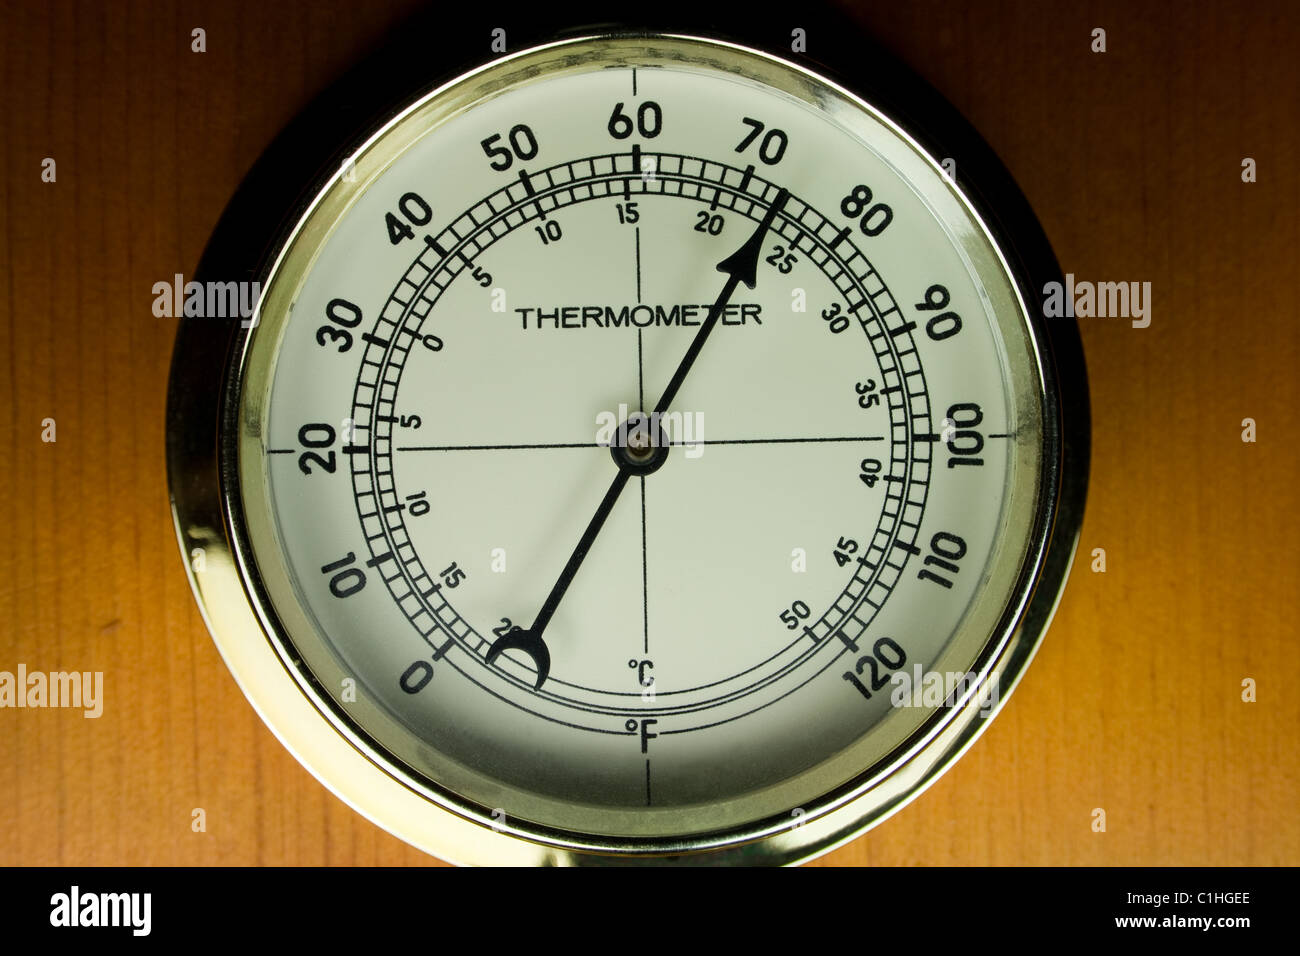 Indoor Dial Thermometer - Stock Image